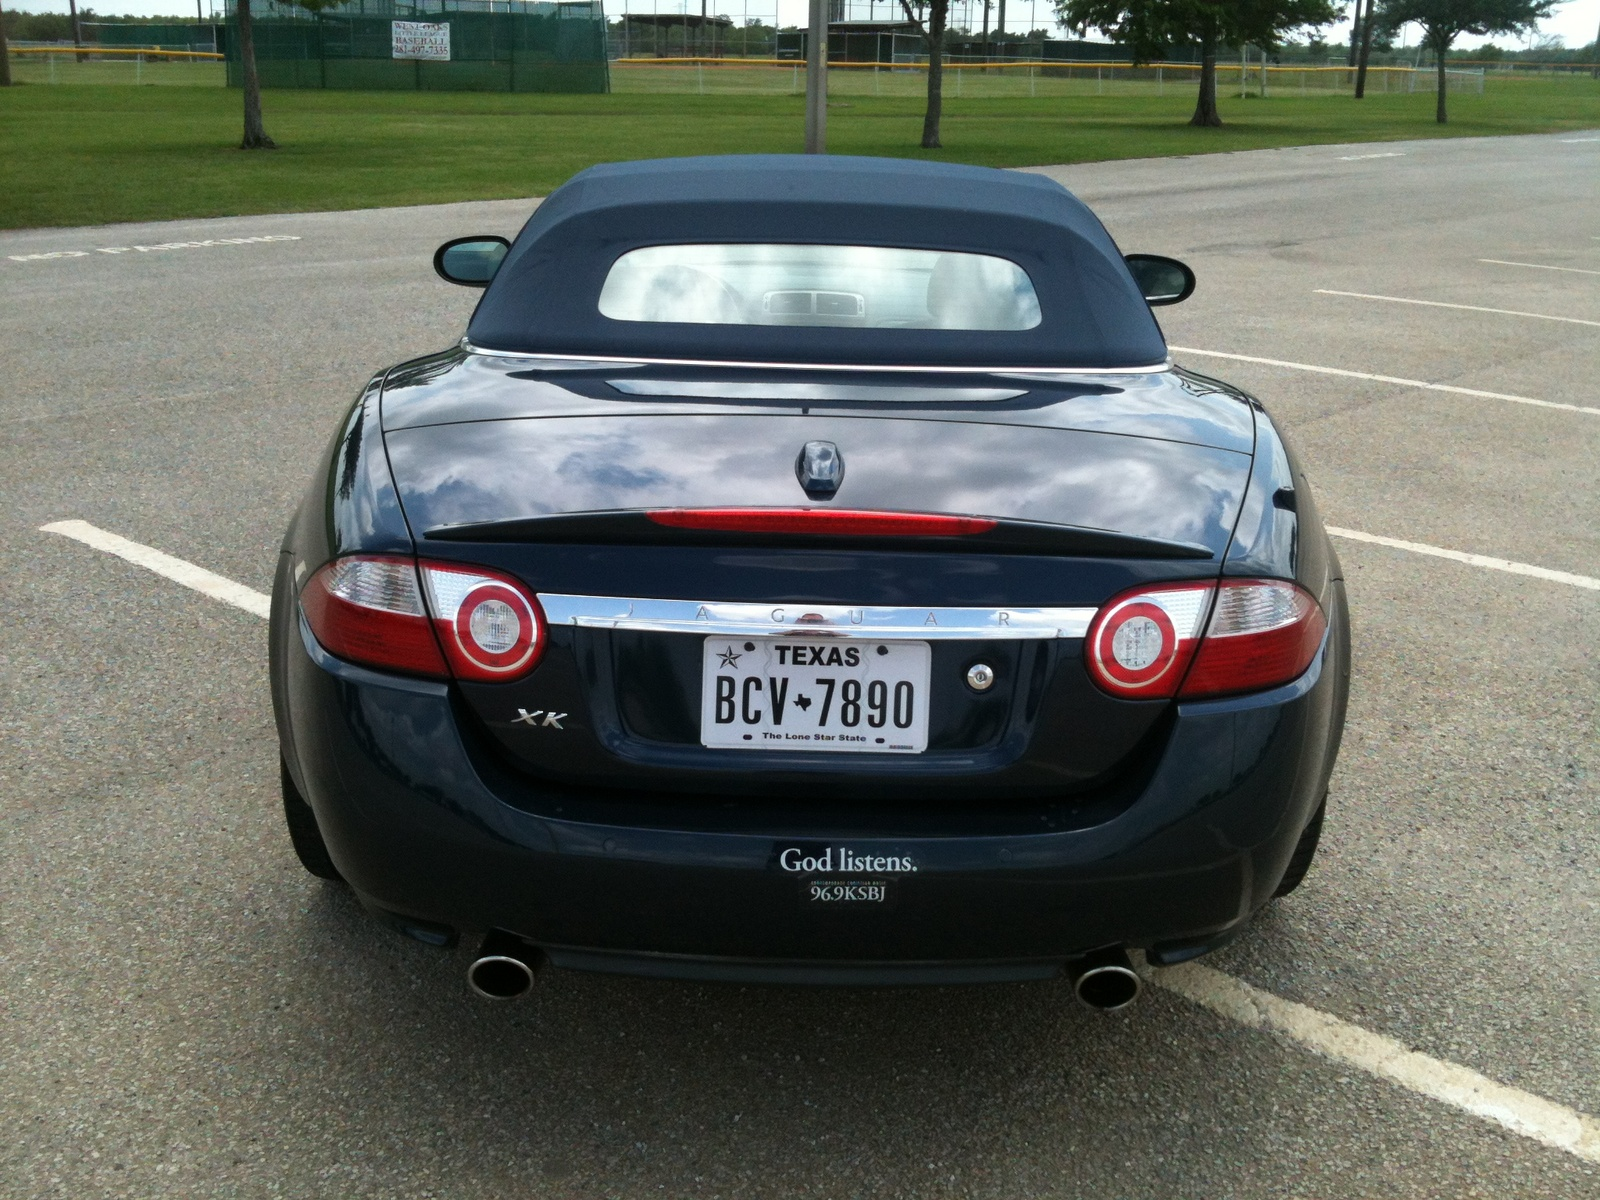 2007 Jaguar XK Series #16 Jaguar XK Series #16